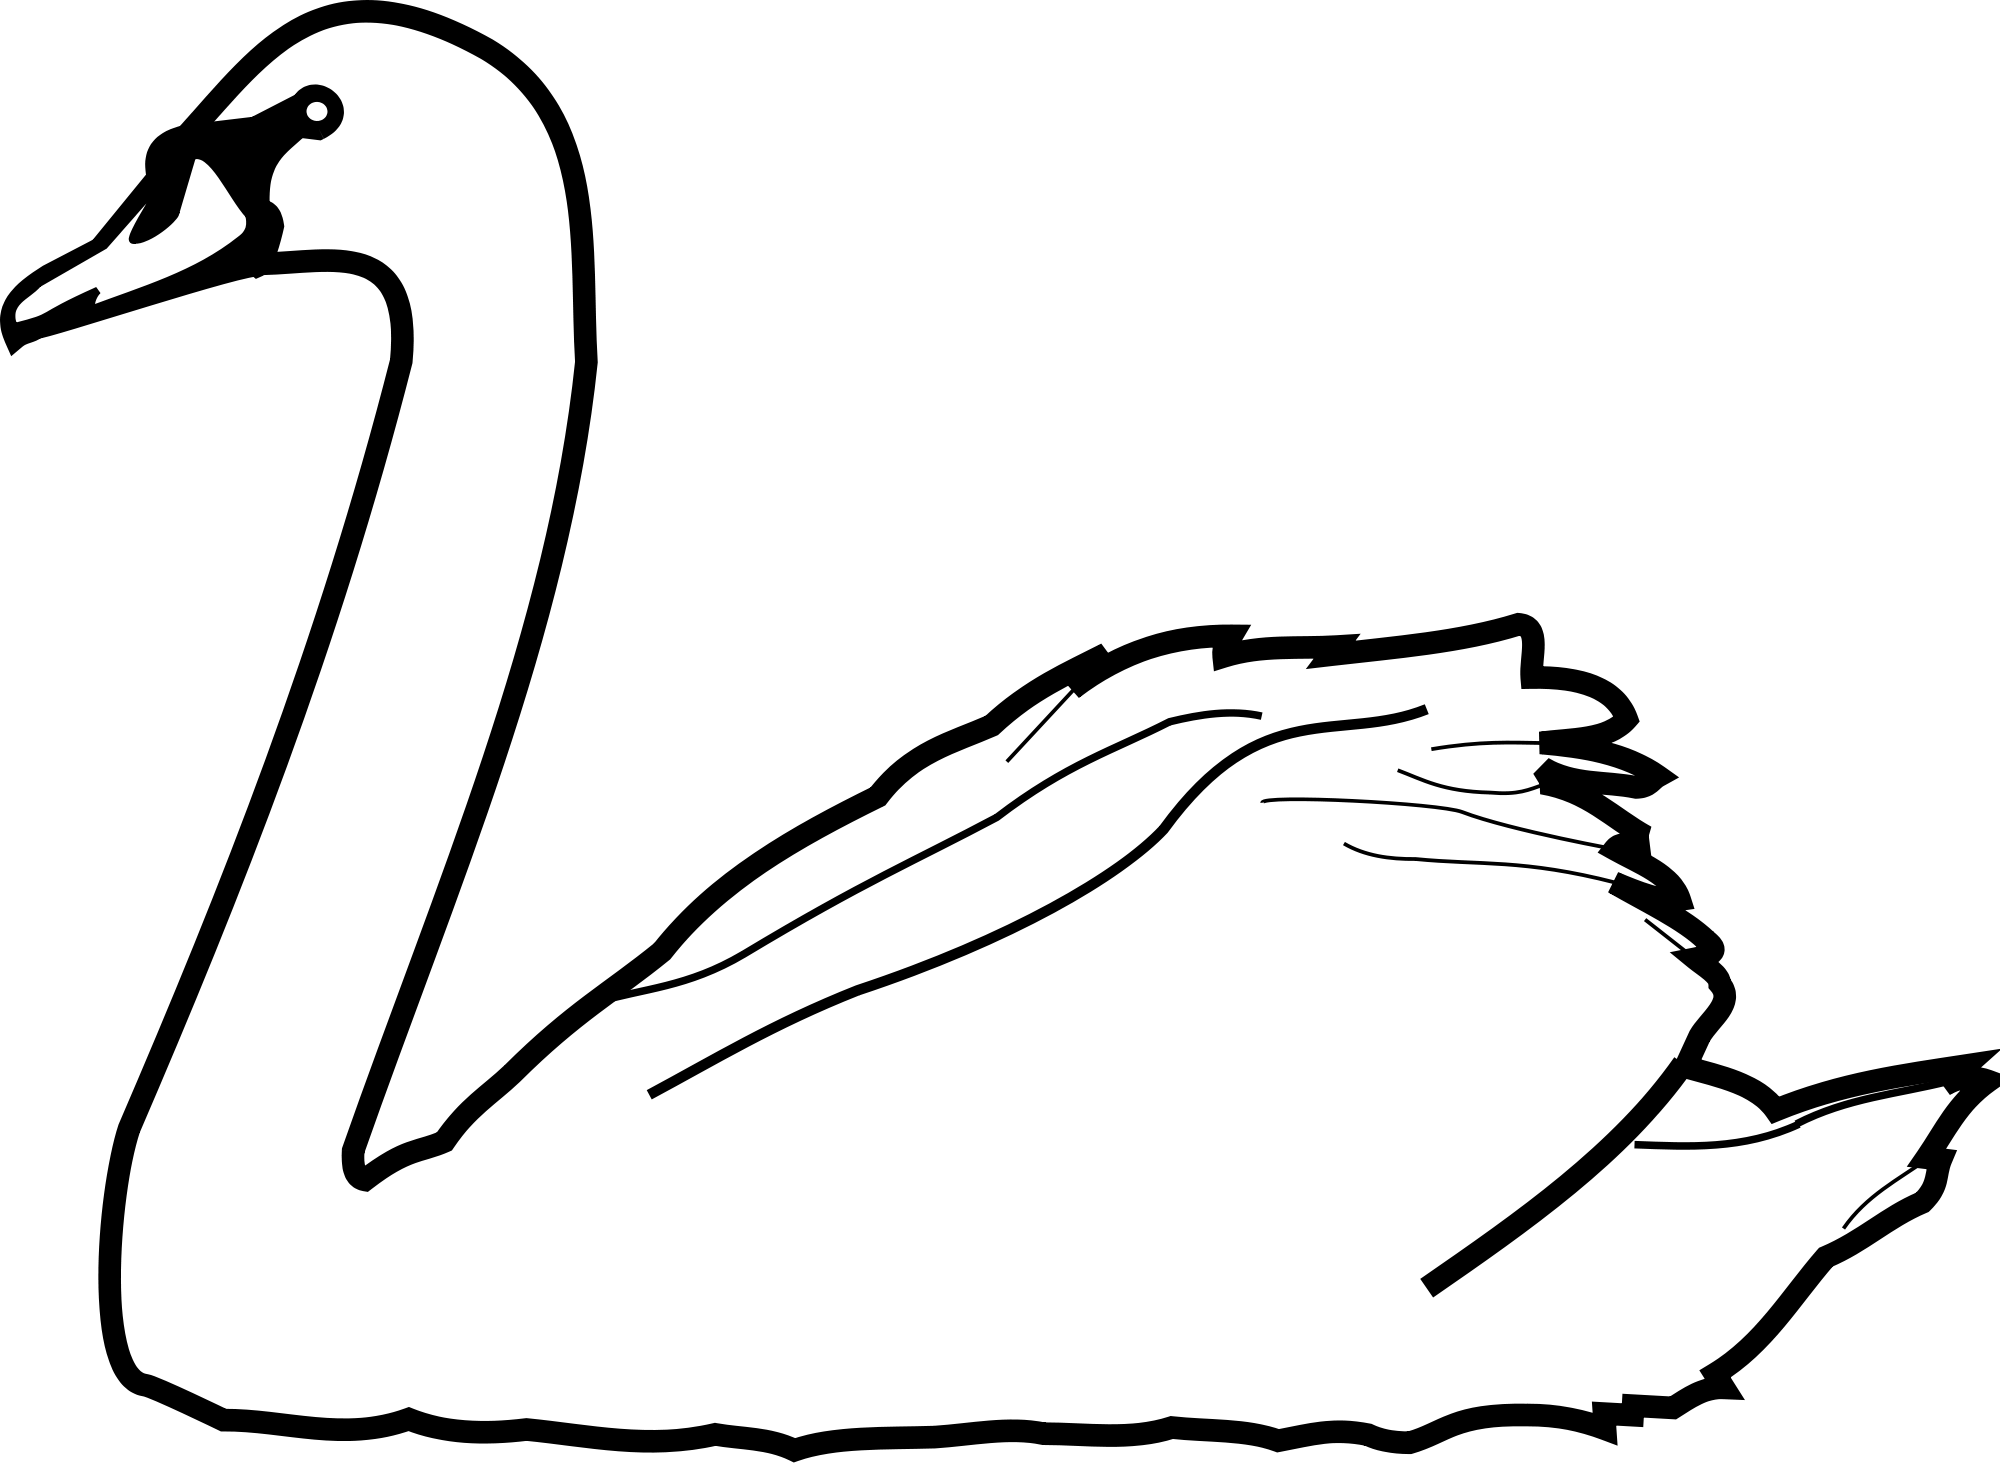 Swans Drawing At Getdrawings.